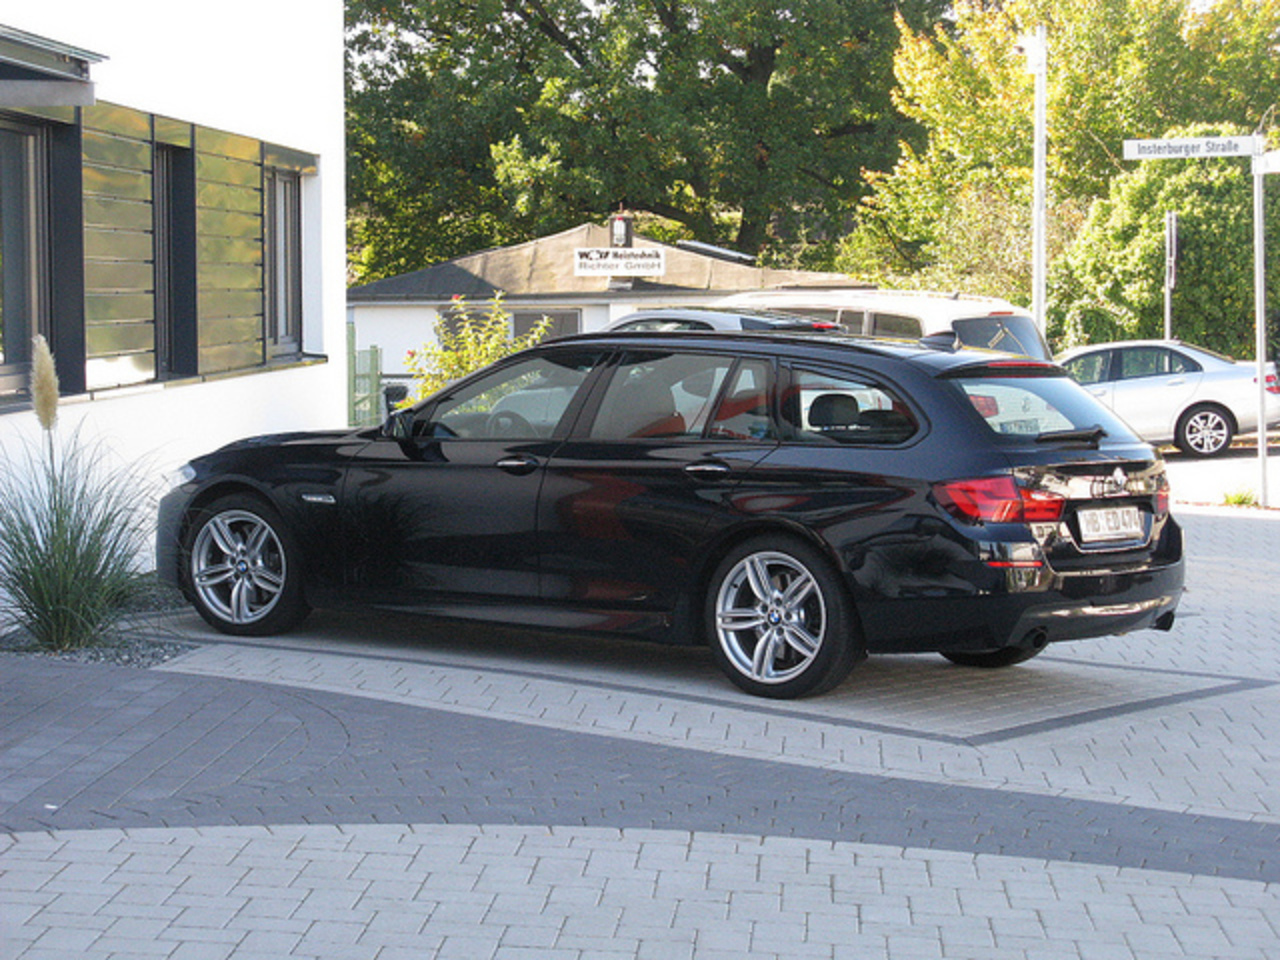 BMW 535d Touring M Sport F11 | Flickr - Photo Sharing!